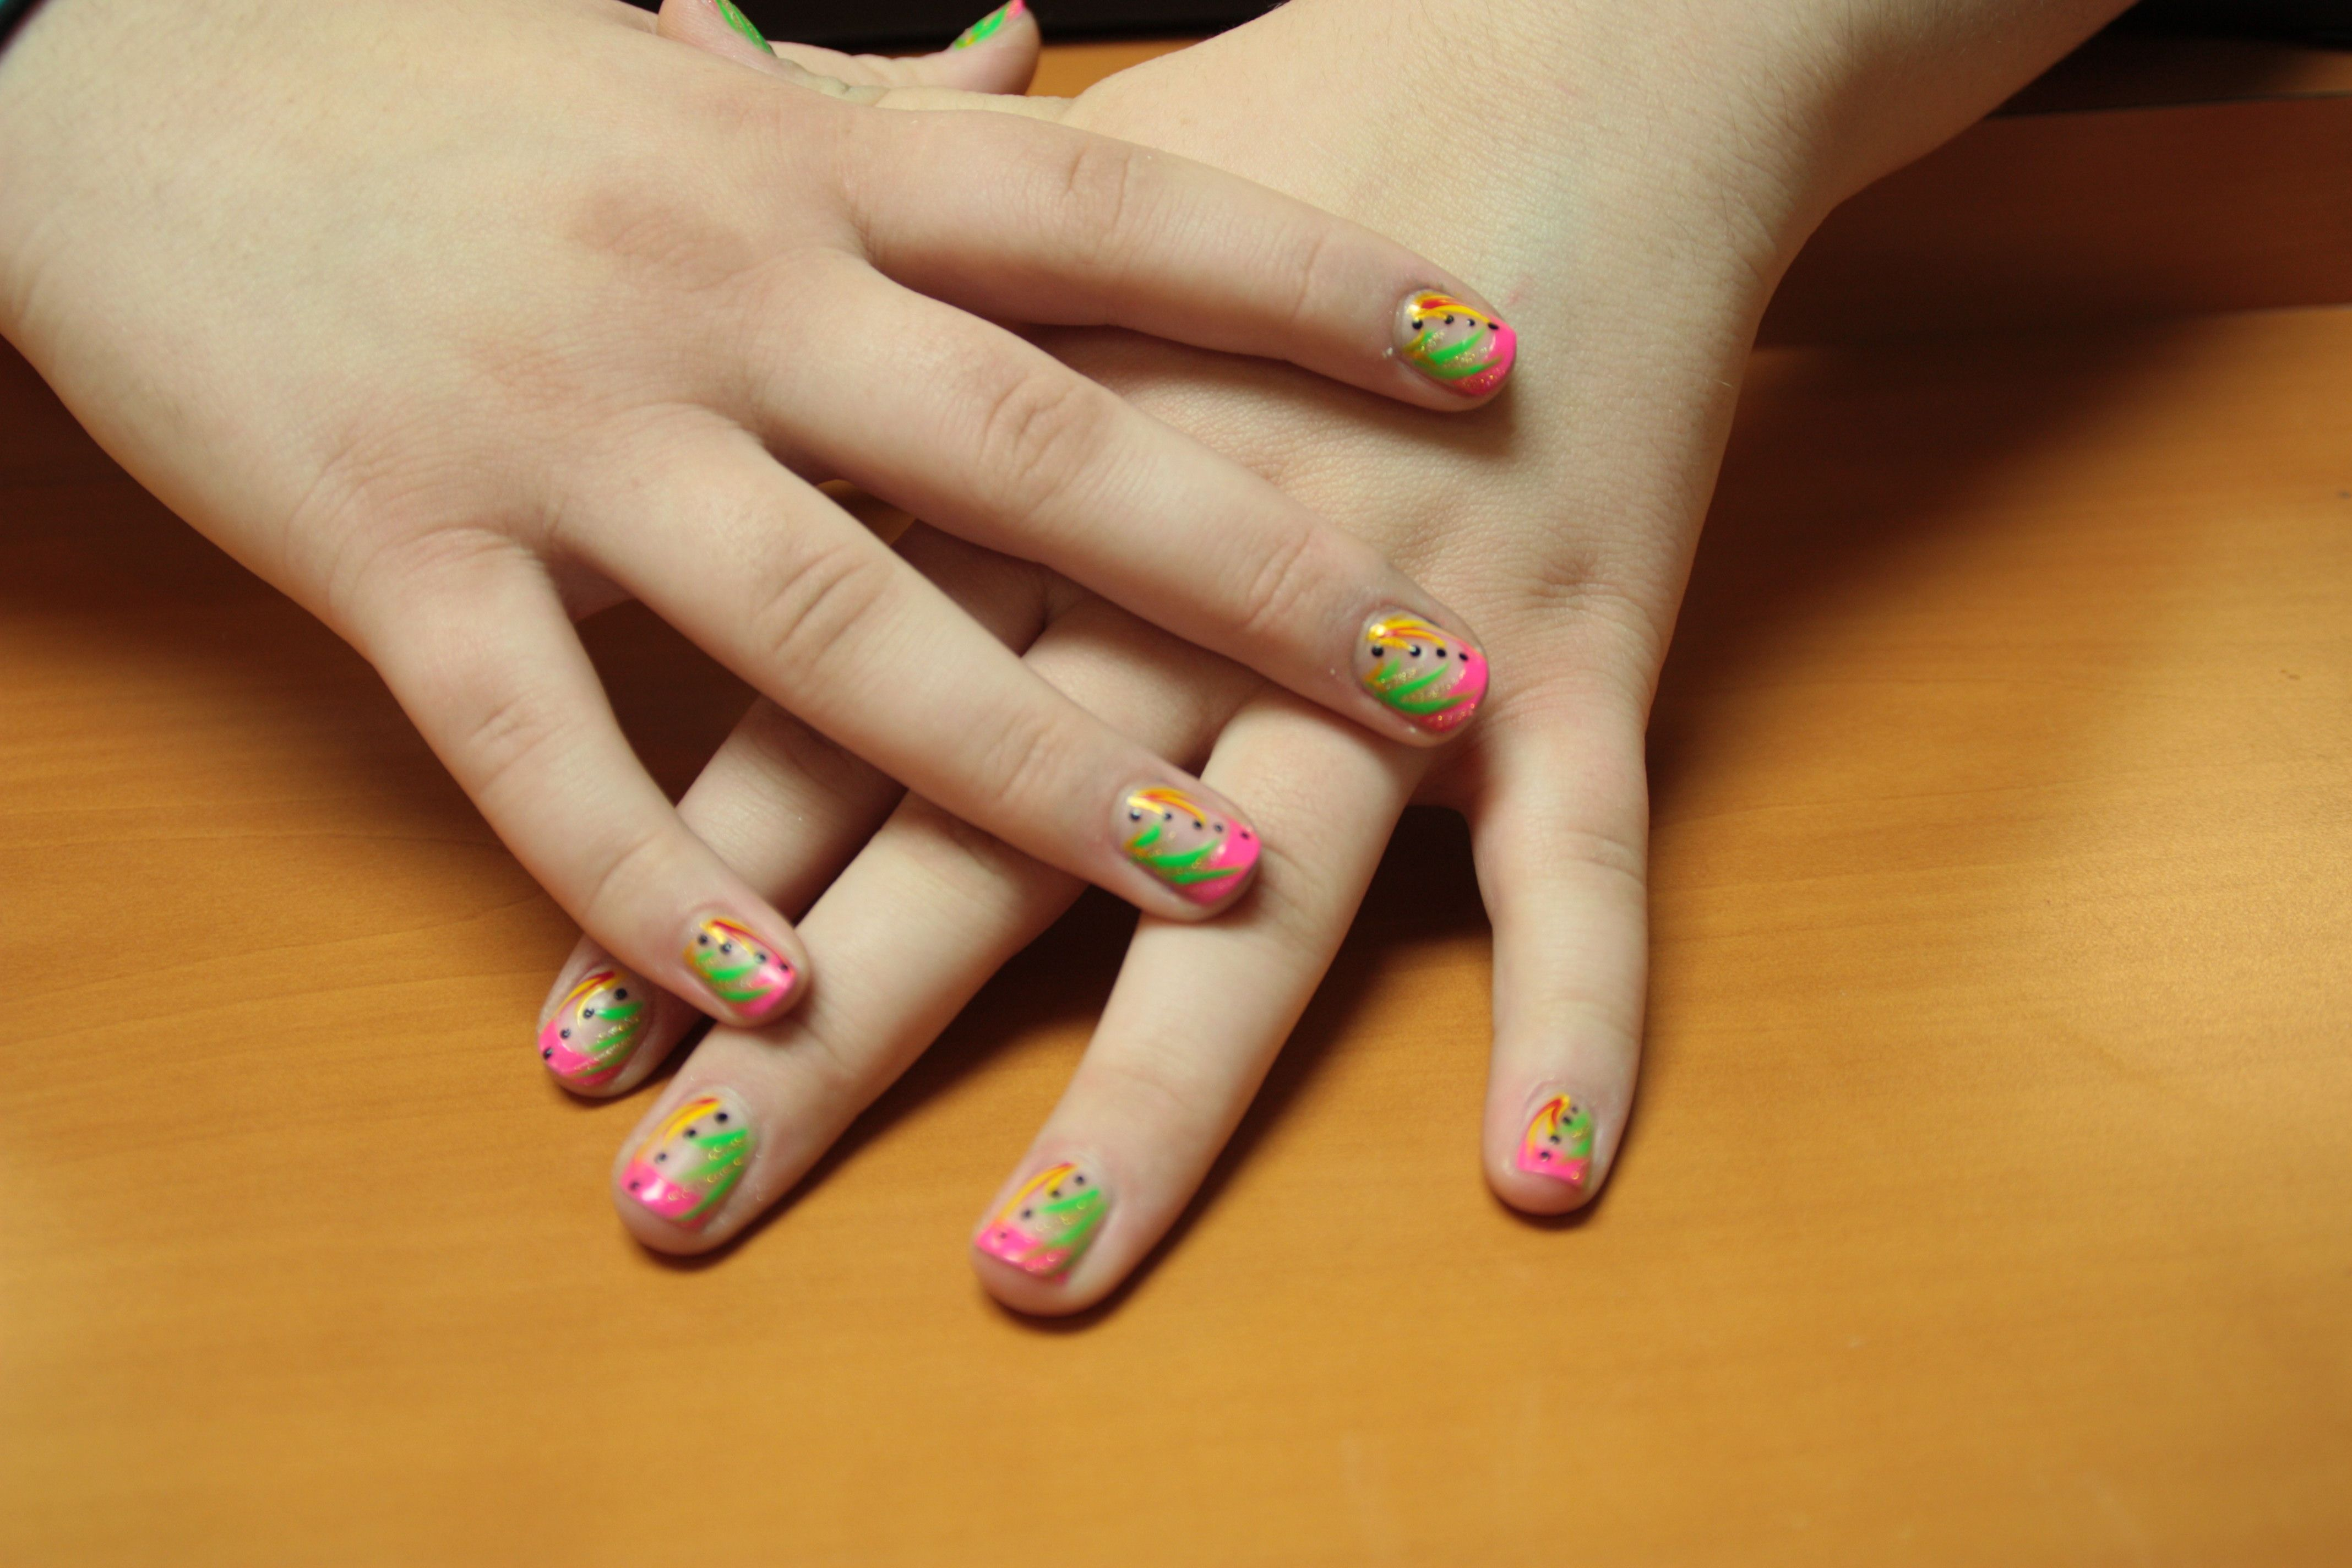 Amazing nail design rainbow for kids httpnailarting easy and cute nail art for kids to do at home simple dotted nail art for kidscartoon nail art for kidsfloral kids nail artchristmas nails prinsesfo Image collections